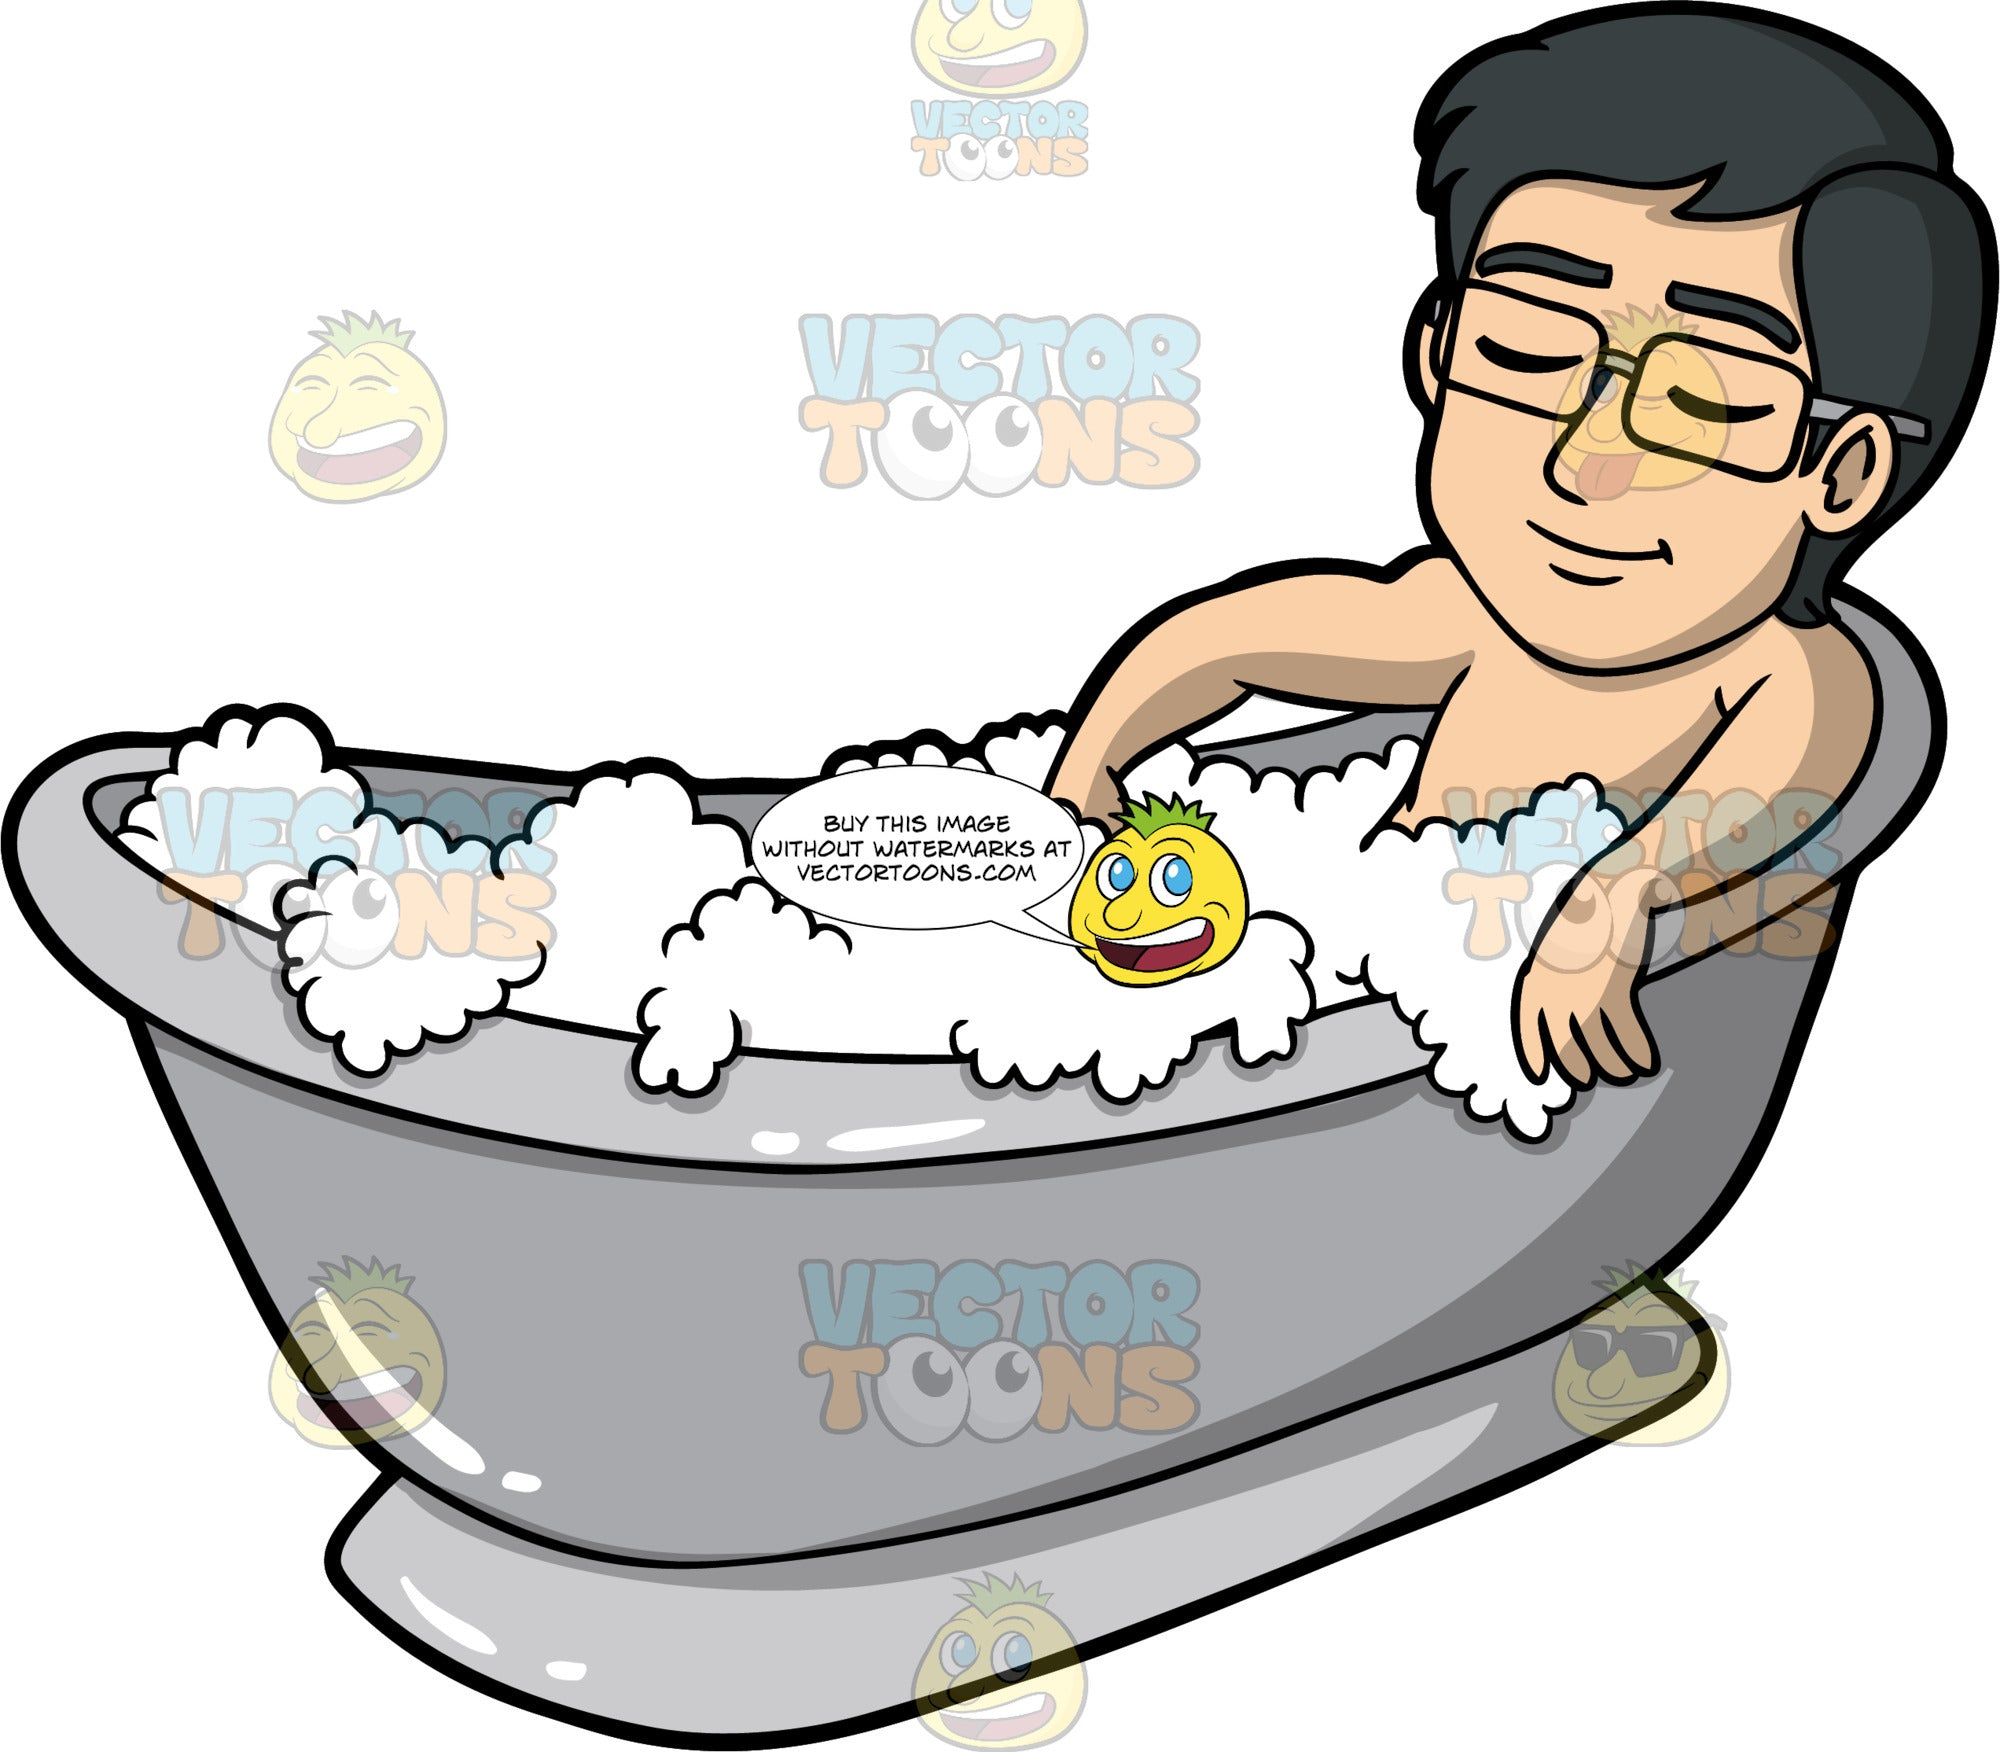 Simon Having A Relaxing Bath. An Asian man wearing eyeglasses, lying in a tub filled with bubbles, closing his eyes and relaxing